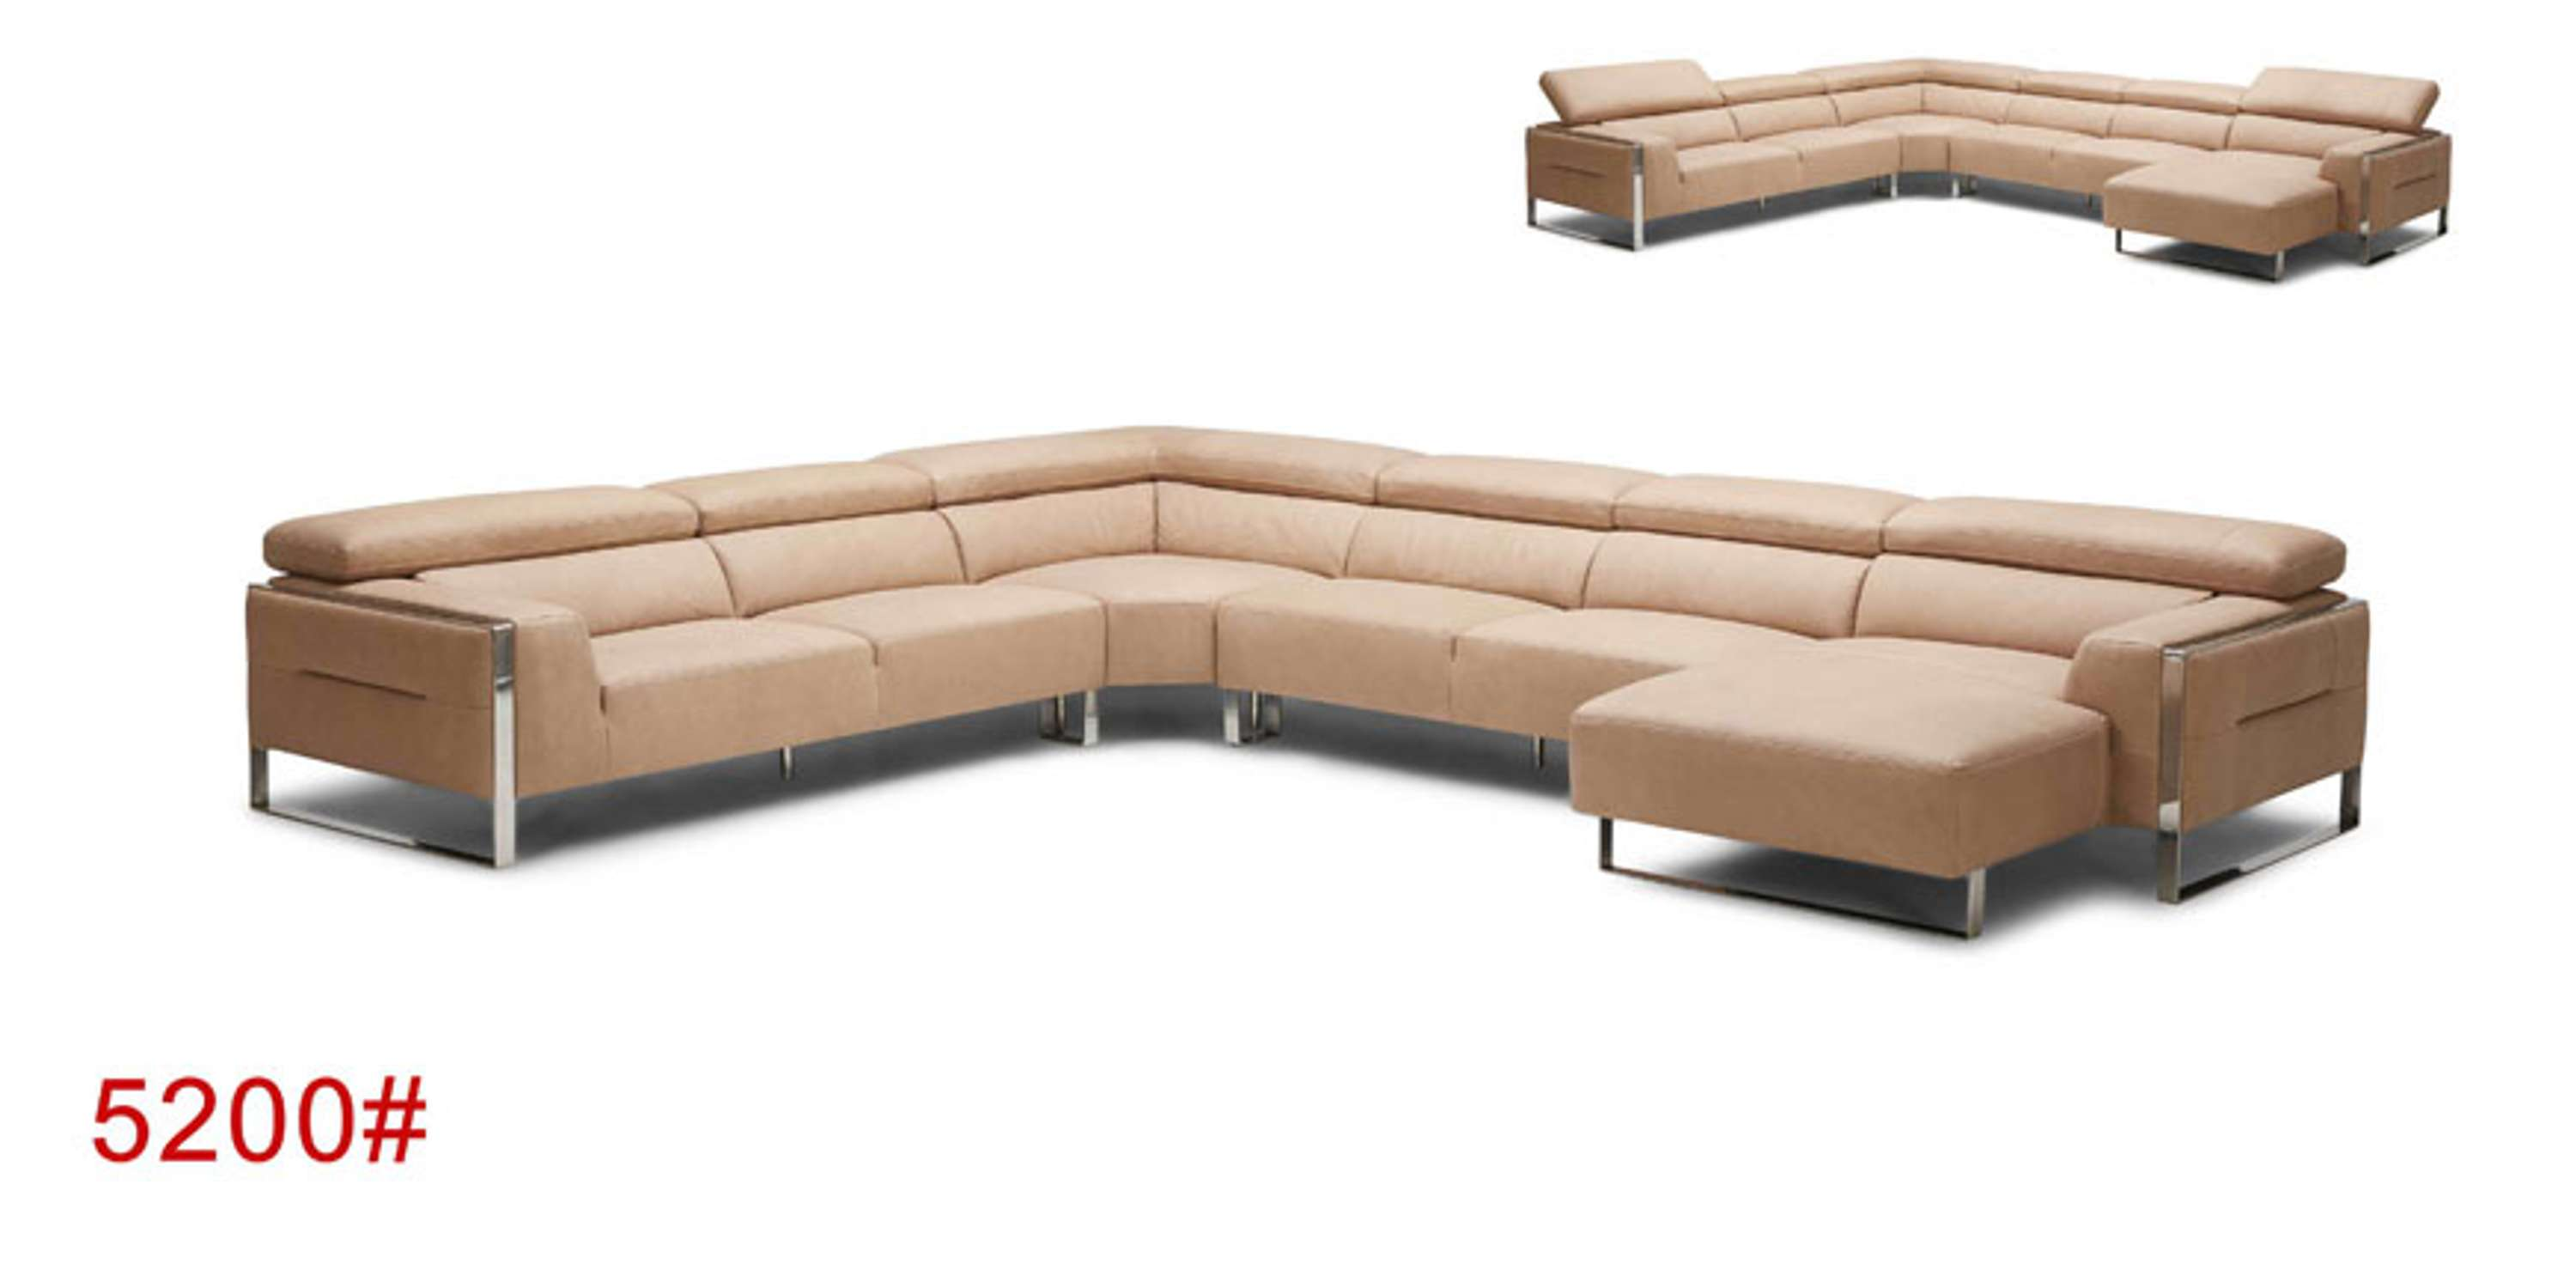 Miraculous European Contemporary Style Leather Sectional Sofa 5200 Uwap Interior Chair Design Uwaporg